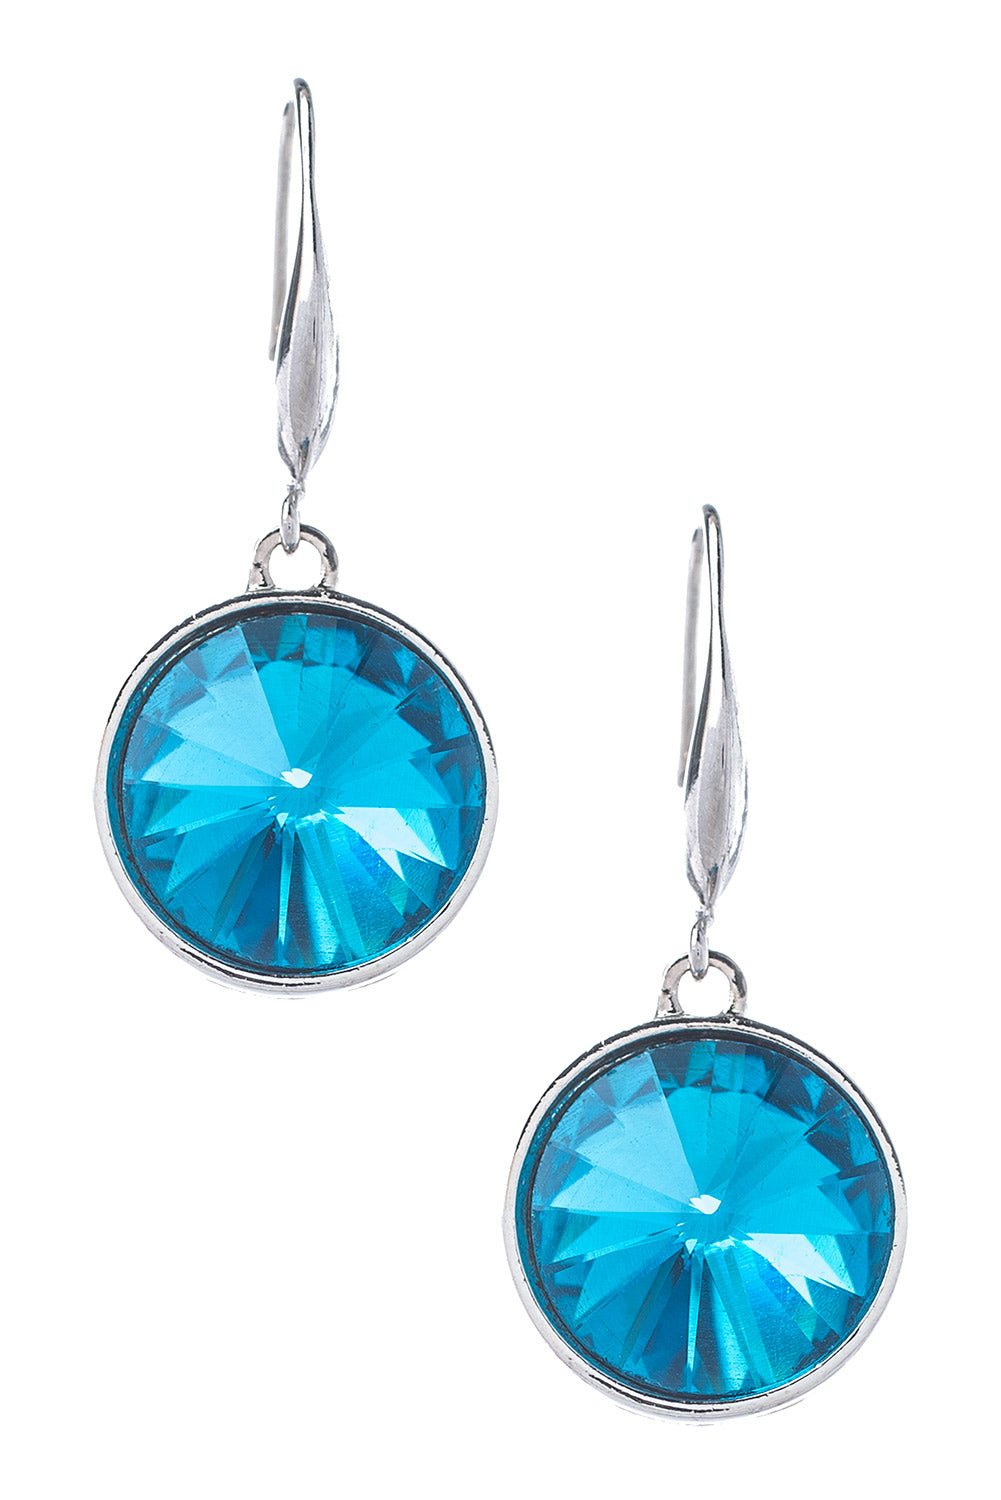 Type 4 Aquamarine Earrings